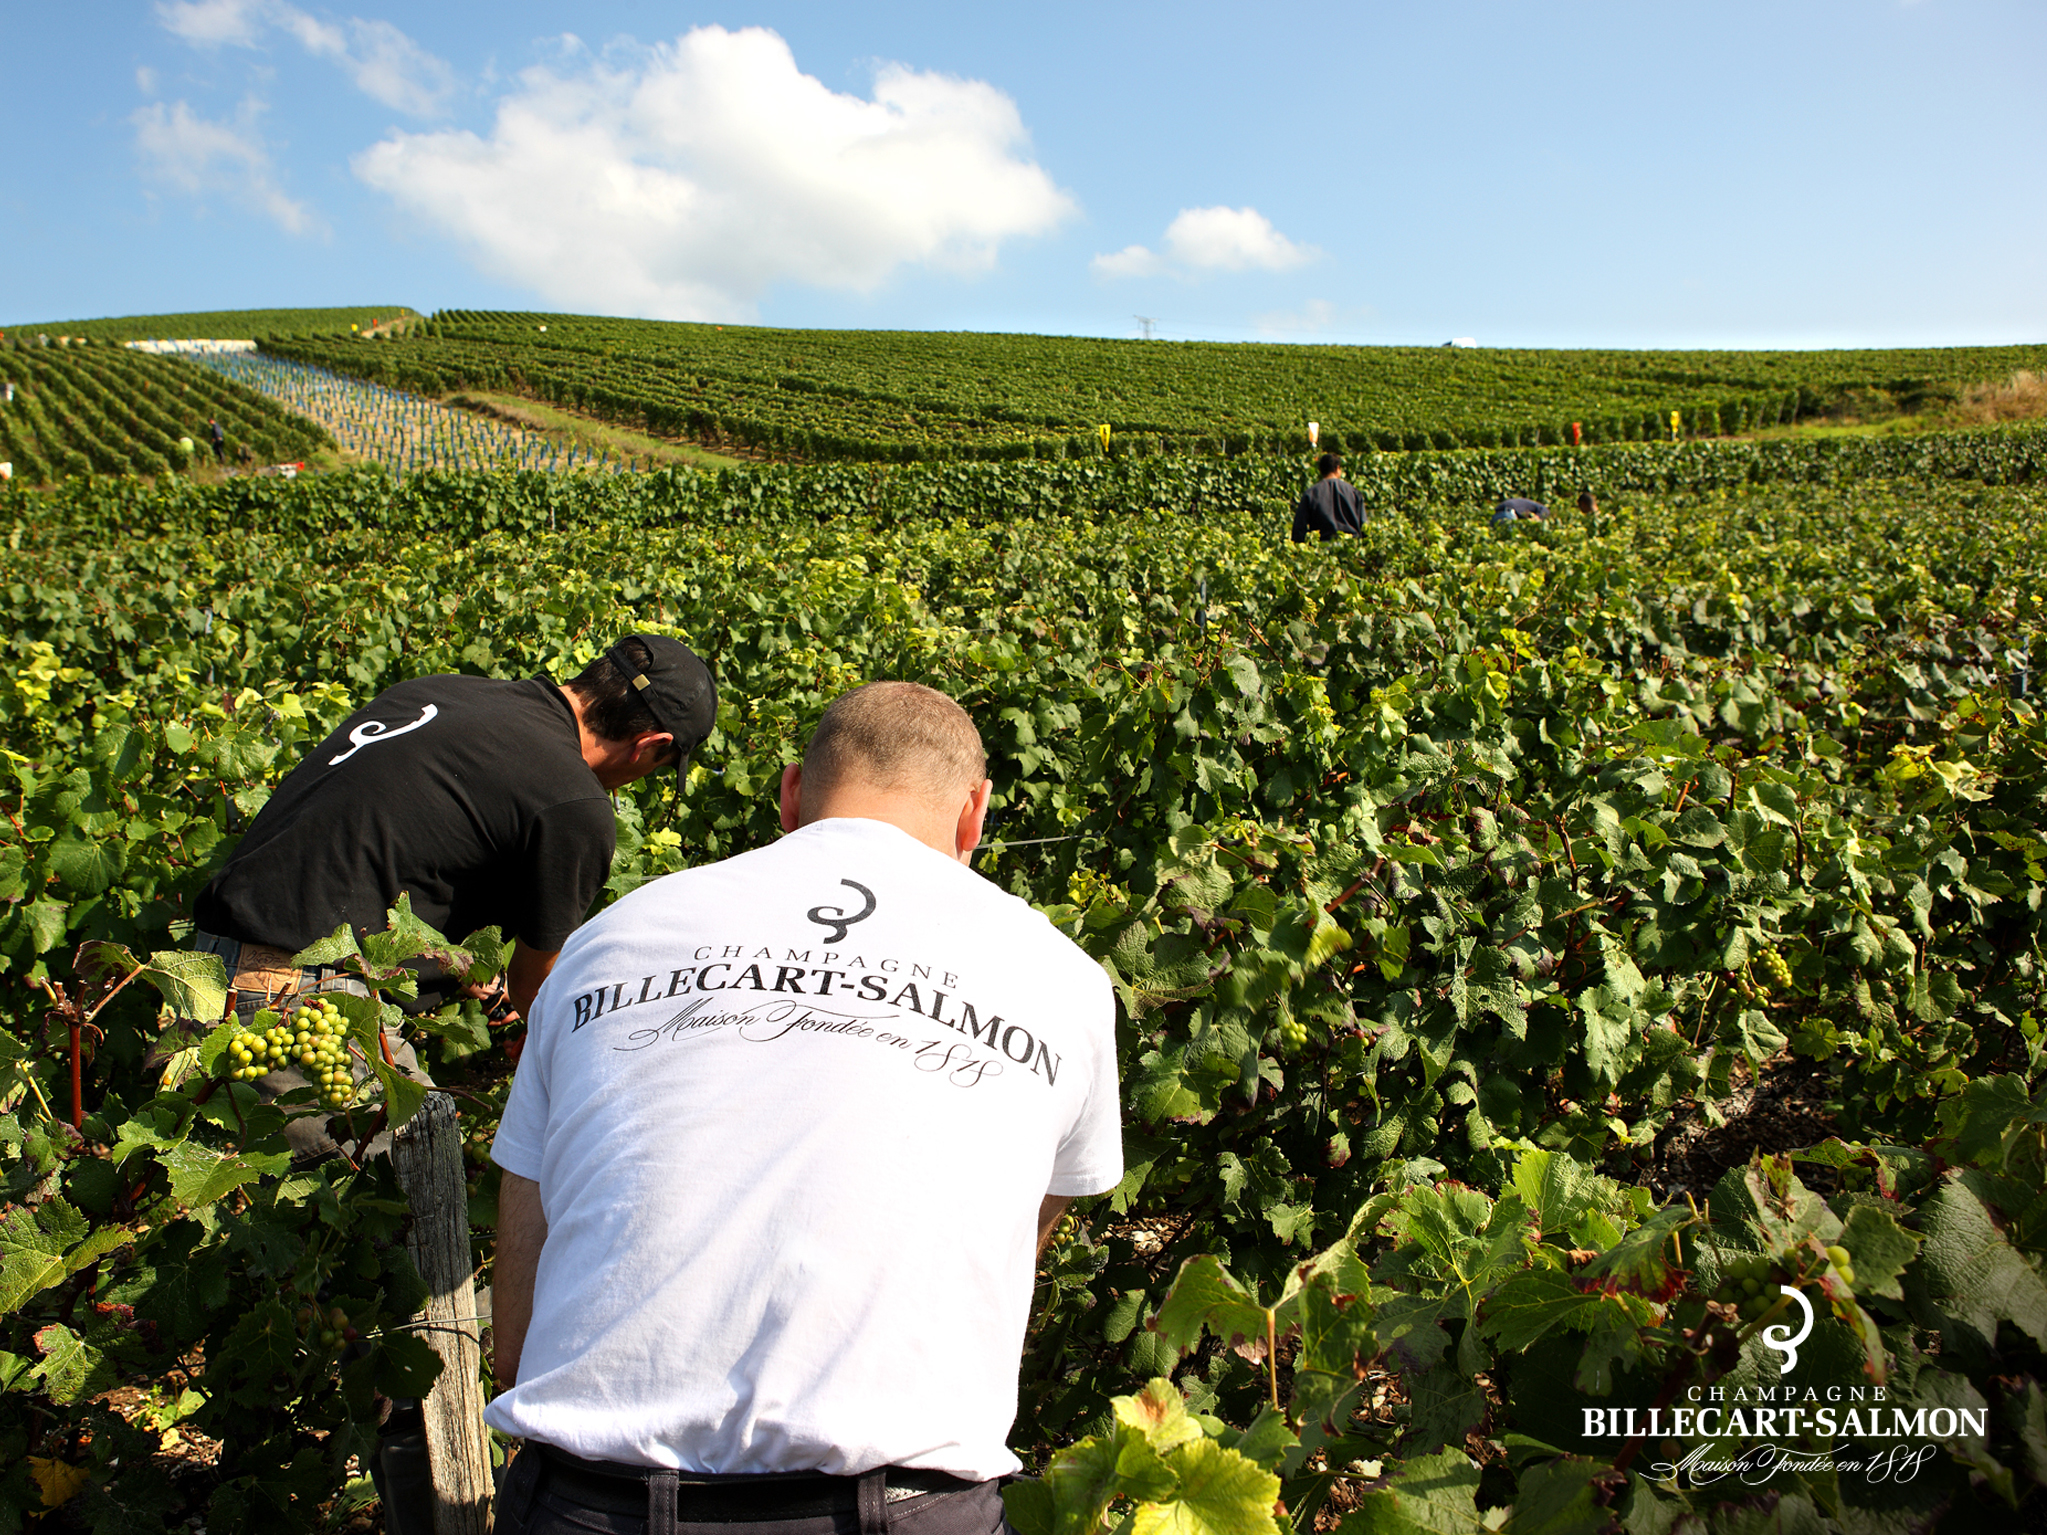 Billecart-Salmon Vintage Report 2011